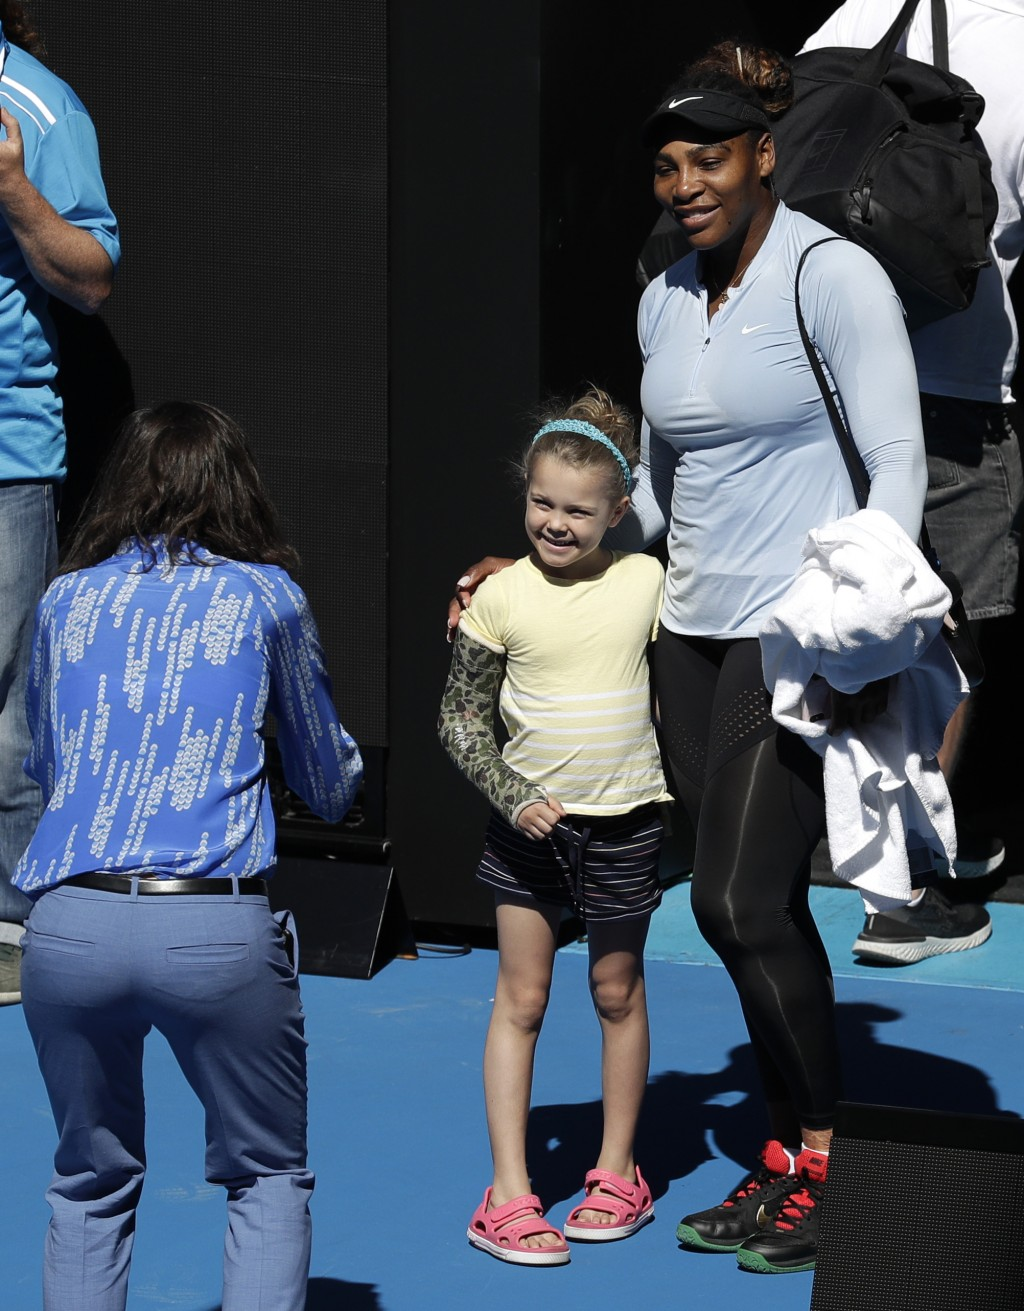 United States' Serena Williams poses for. Photo with a young fan following a practice session at the Australian Open tennis championships in Melbourne